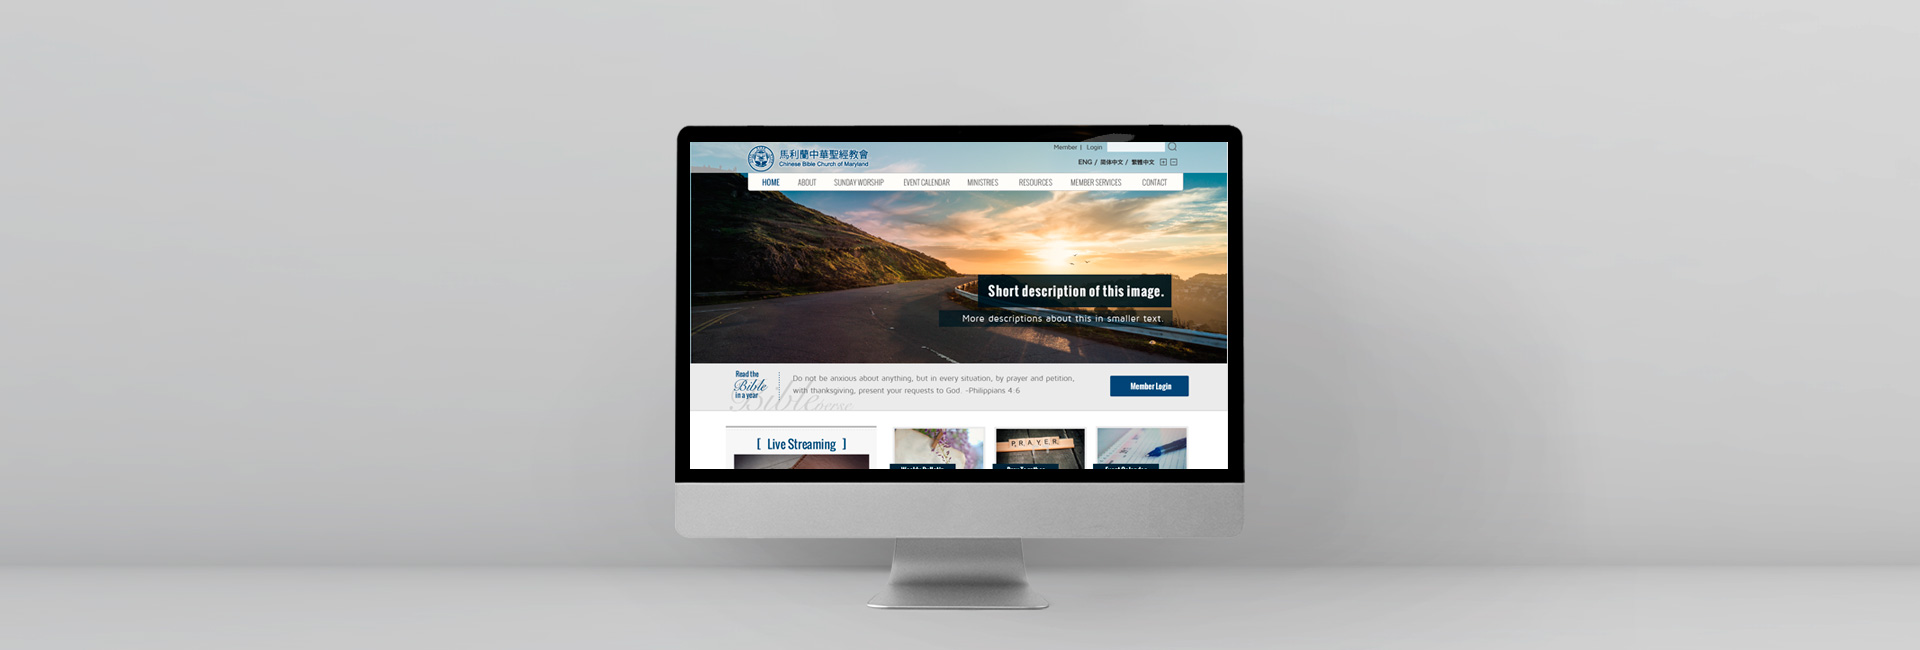 CBCM Church Website